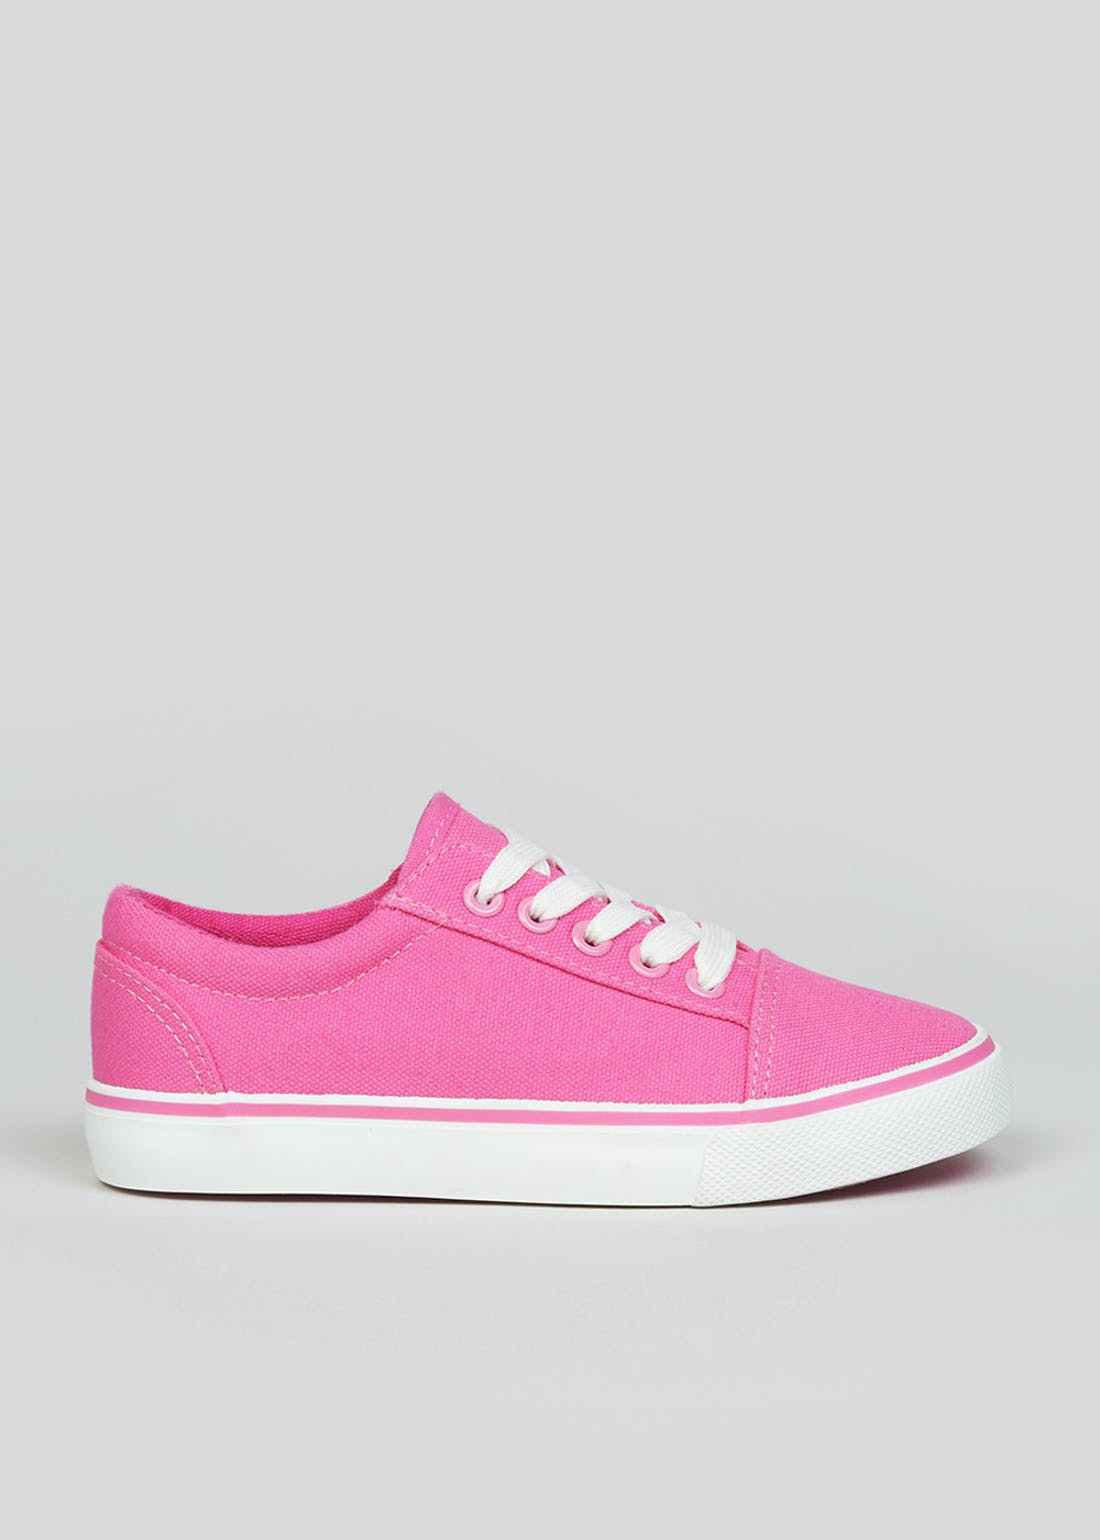 Girls Pink Lace Up Canvas Trainers (Younger 10-Older 5)